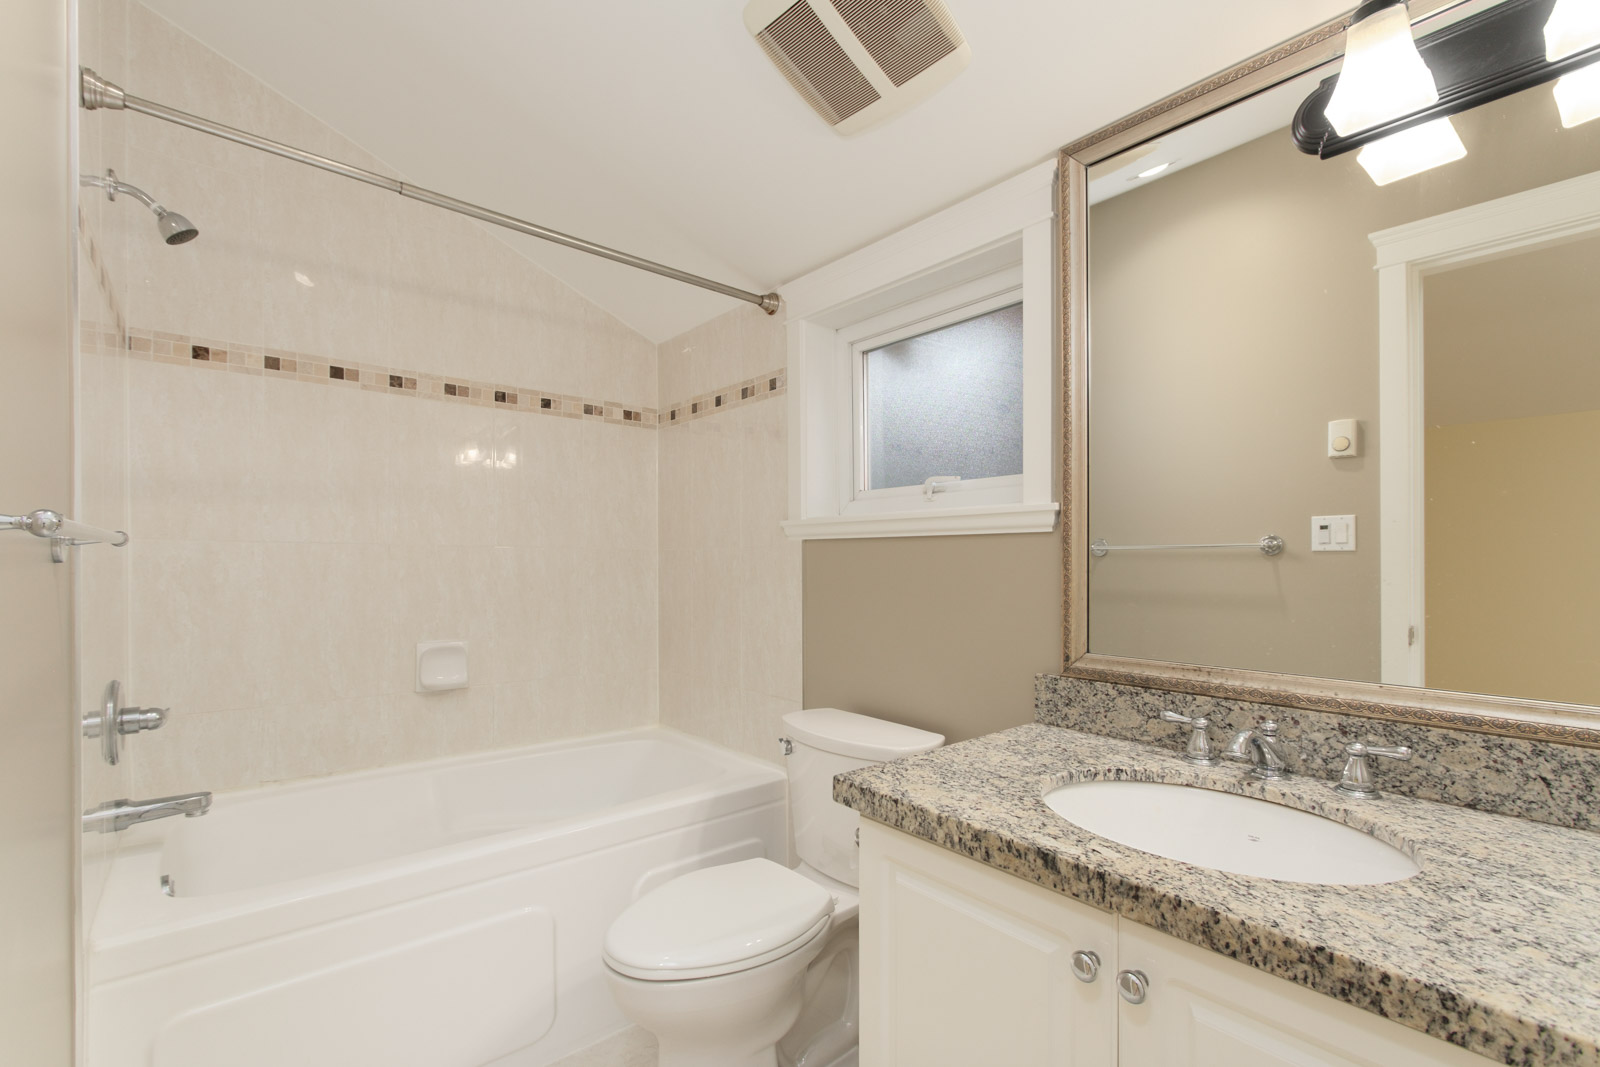 bathroom with vanity and mirror on right and bathtub in coach house for rent near commercial drive in east vancouver